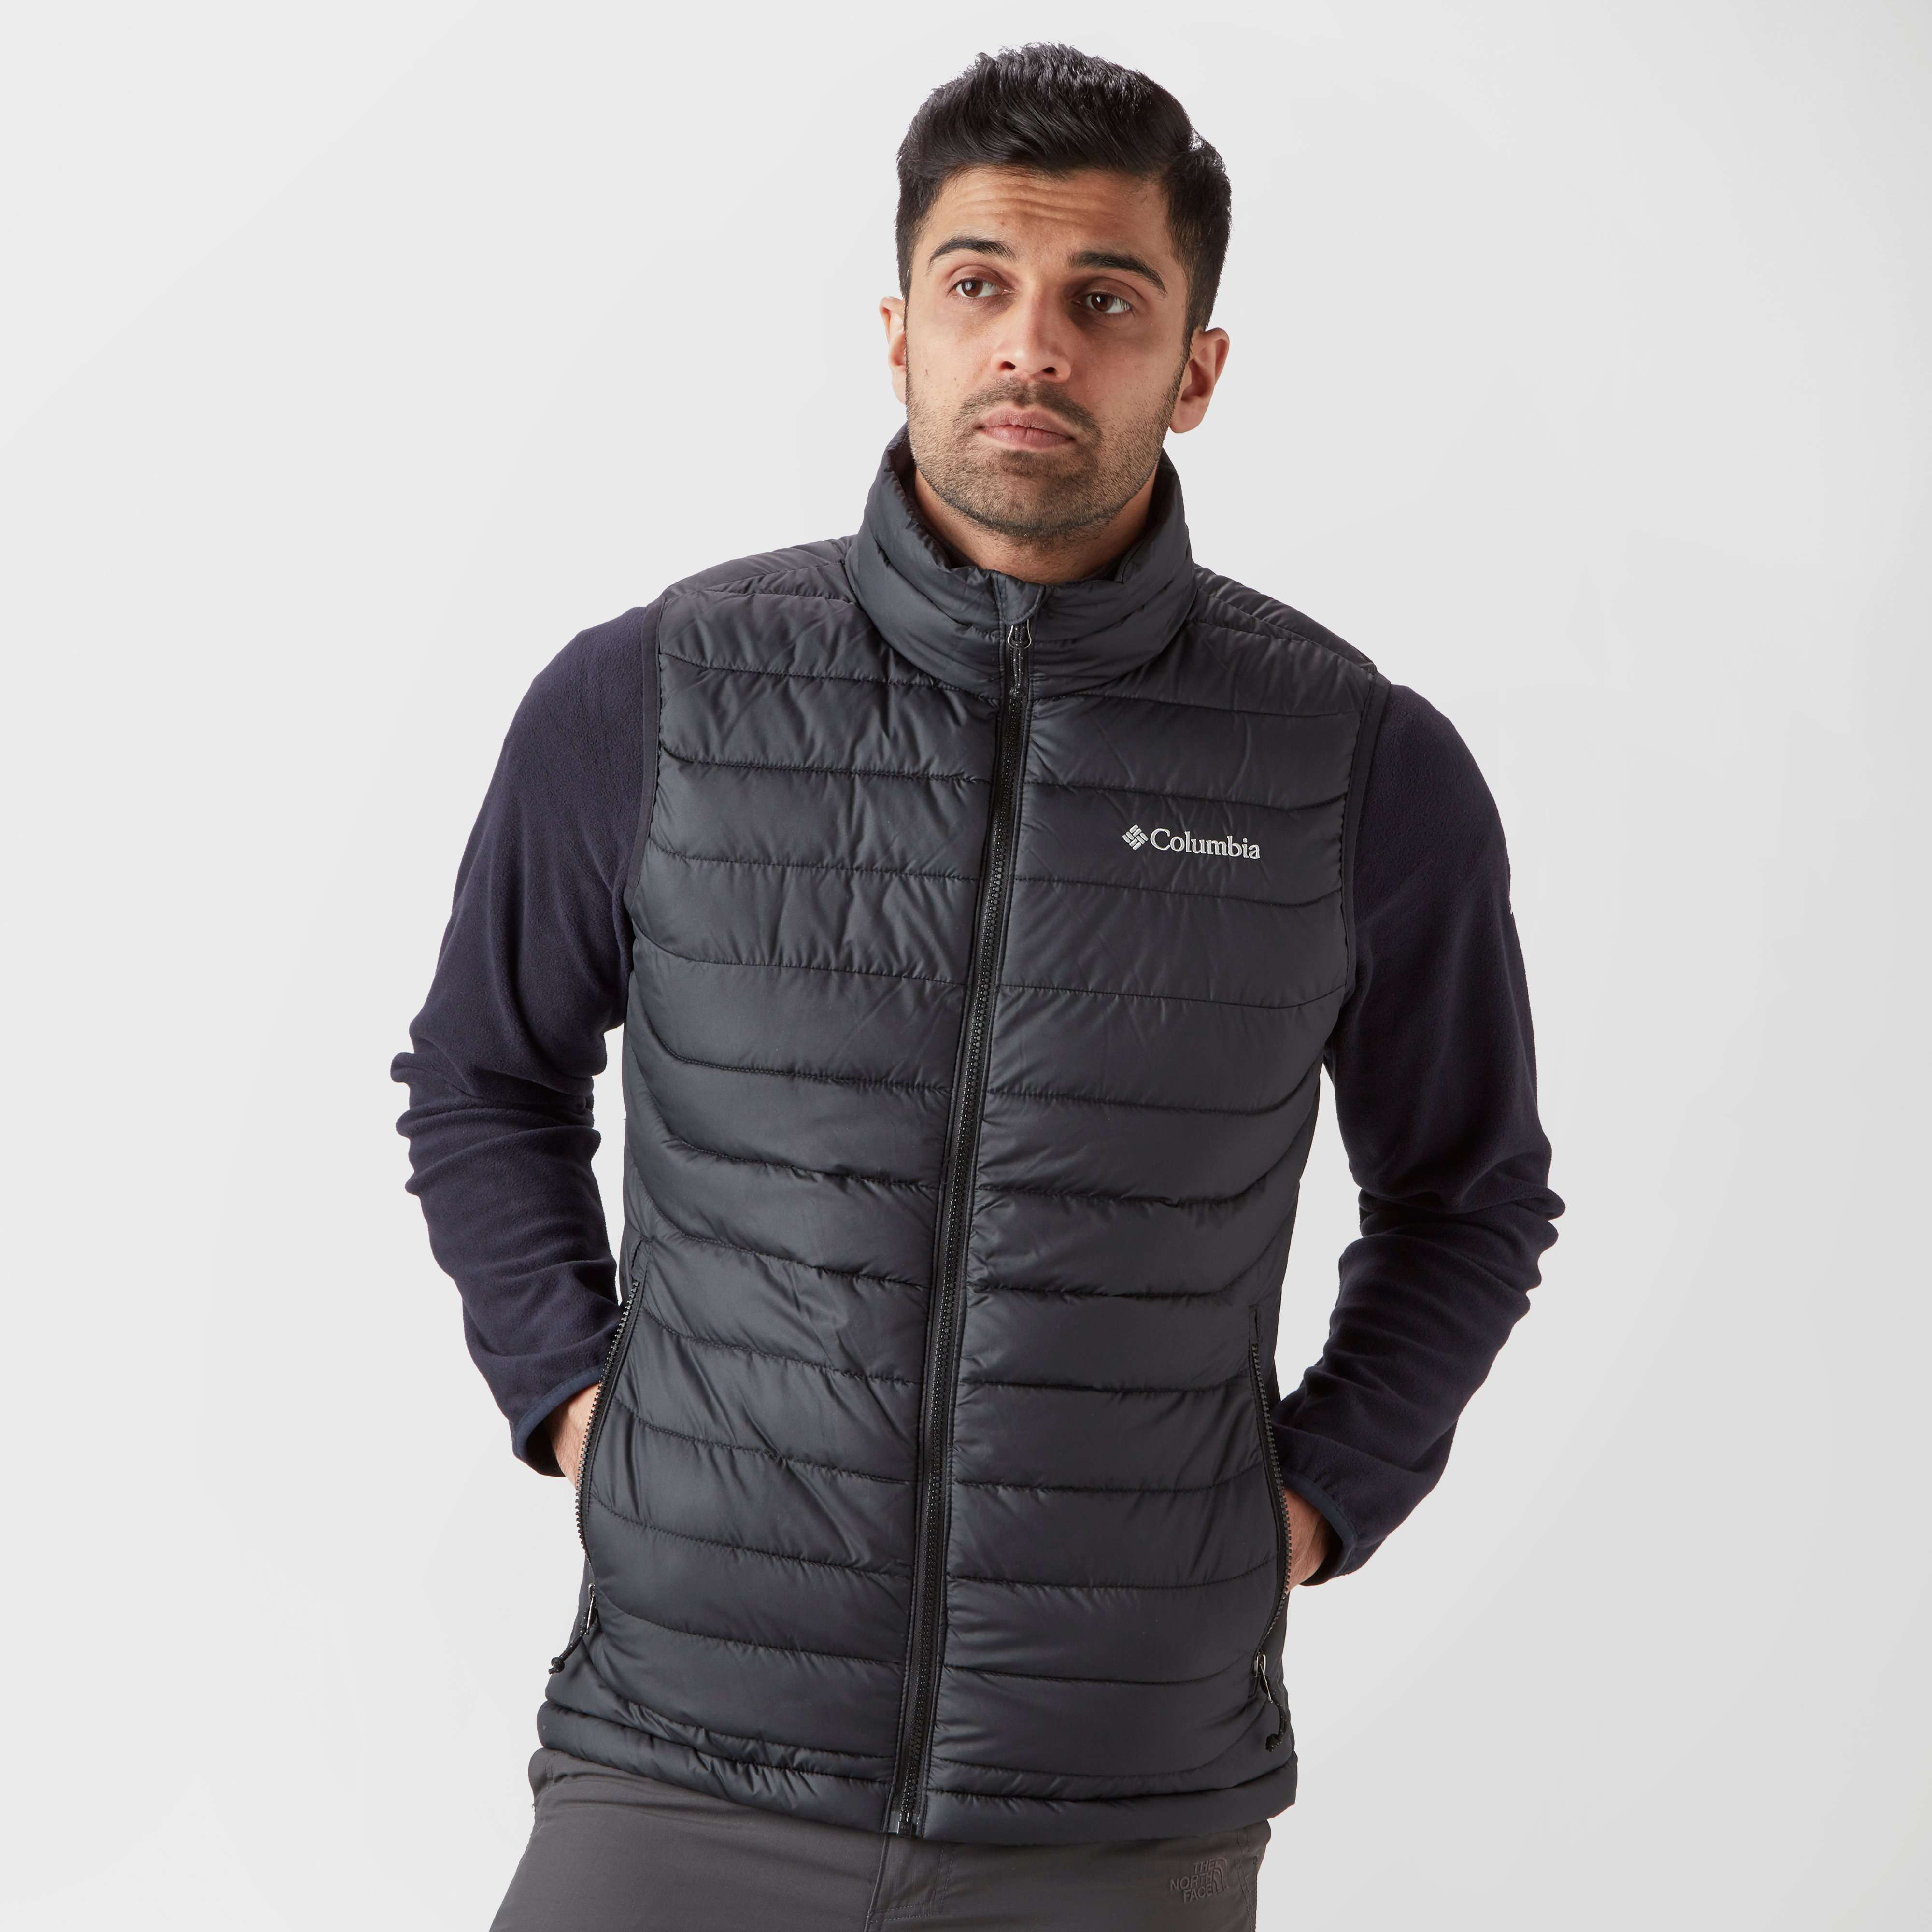 COLUMBIA Men's Powder Lite™ Insulated Gilet